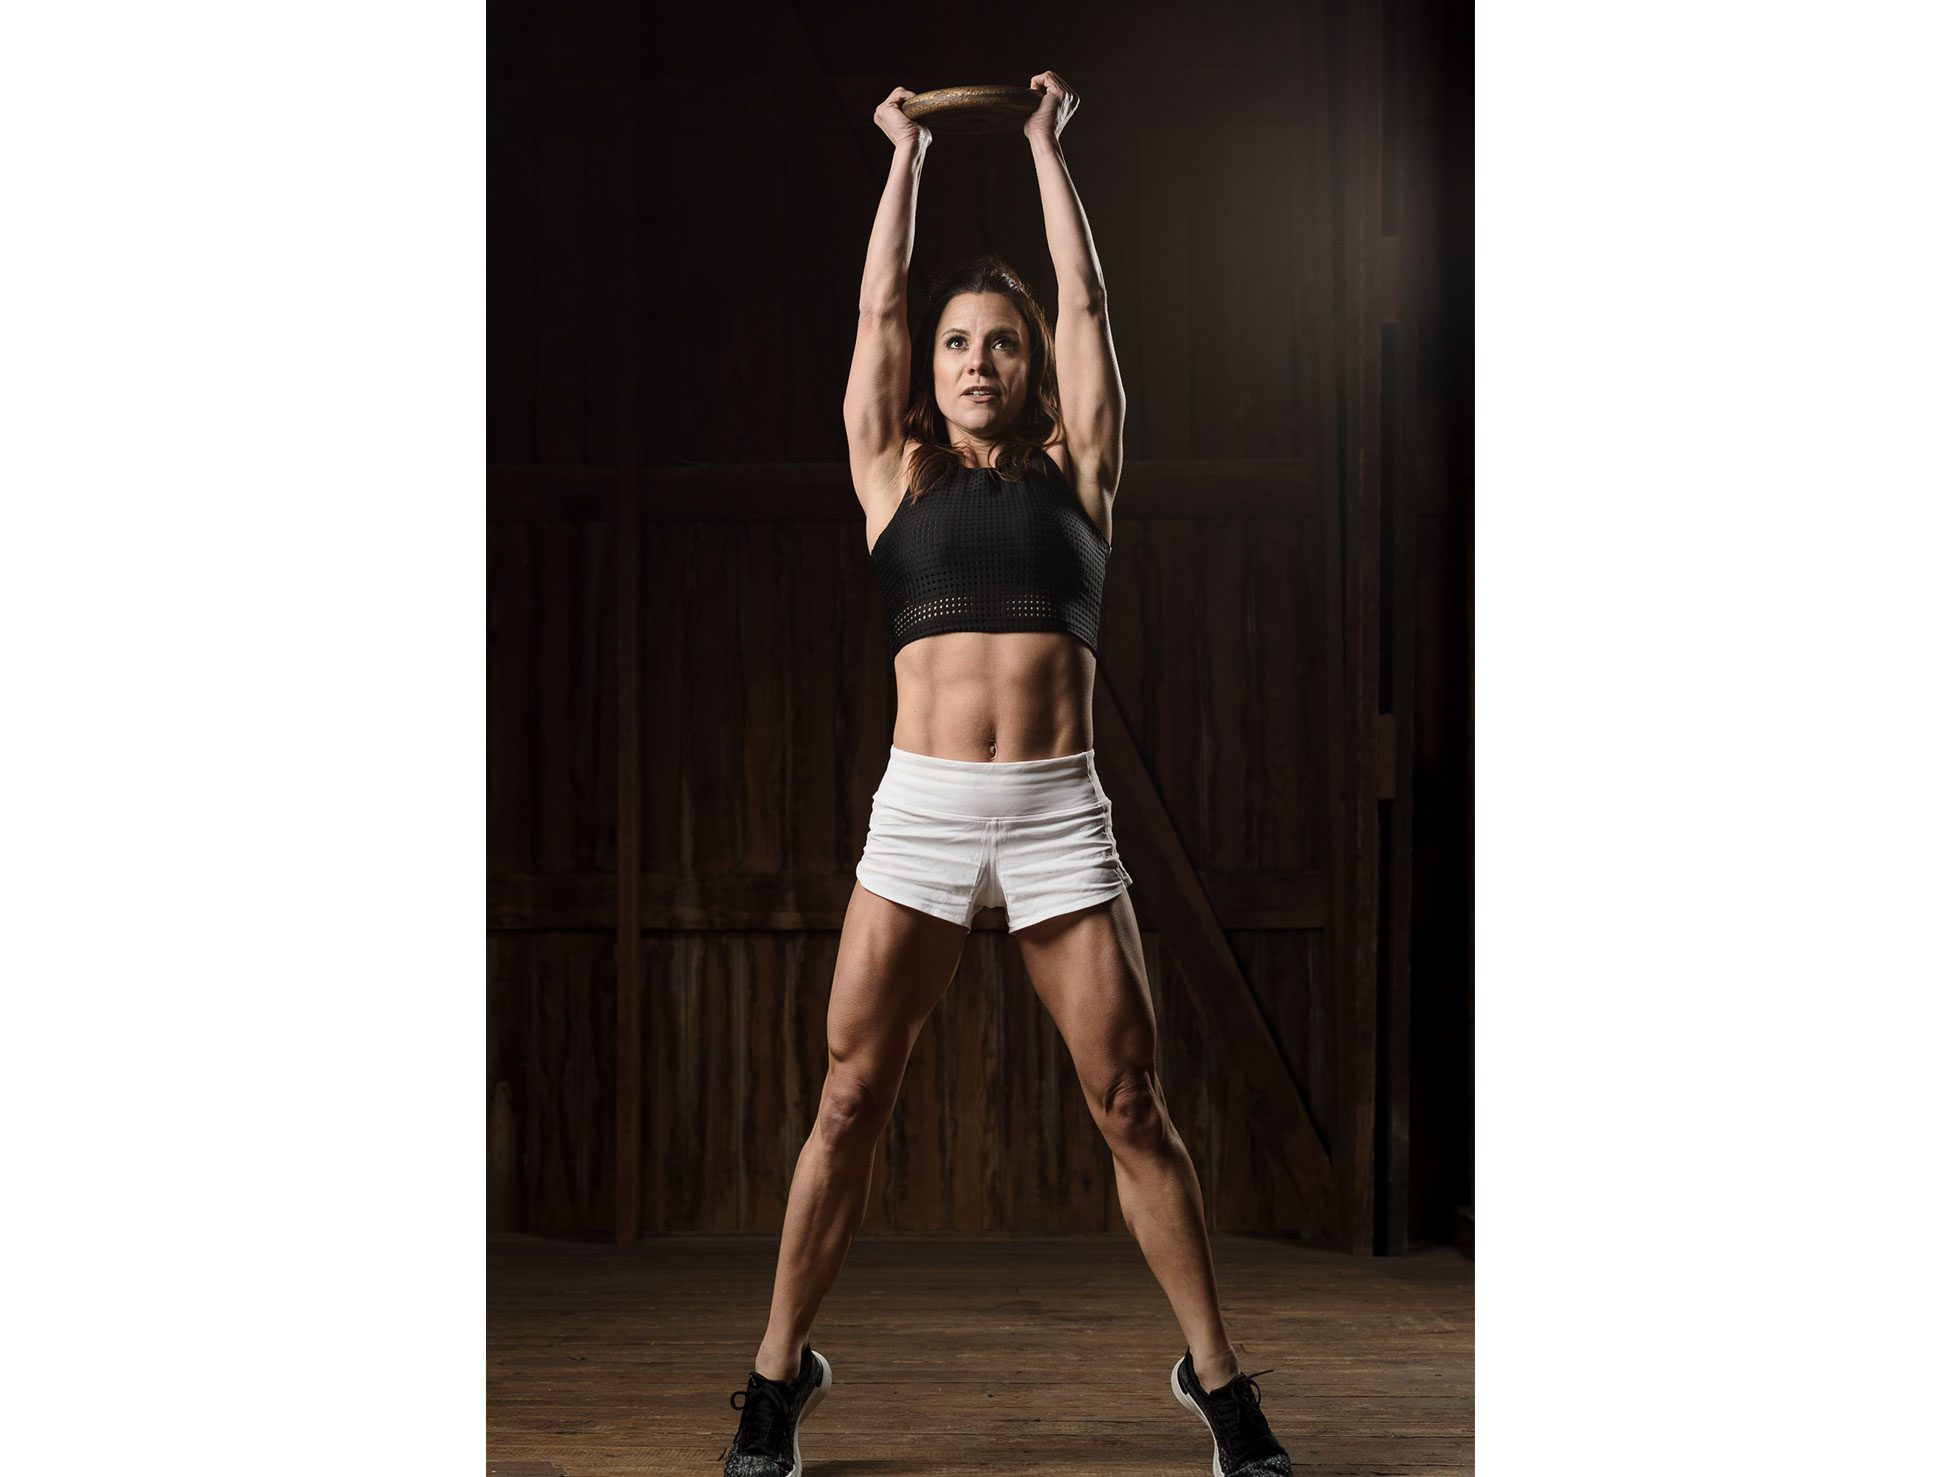 A personal trainer lifts a weighted plate into the air as she comes up on her toes, flexing multiple muscle groups as she does so.